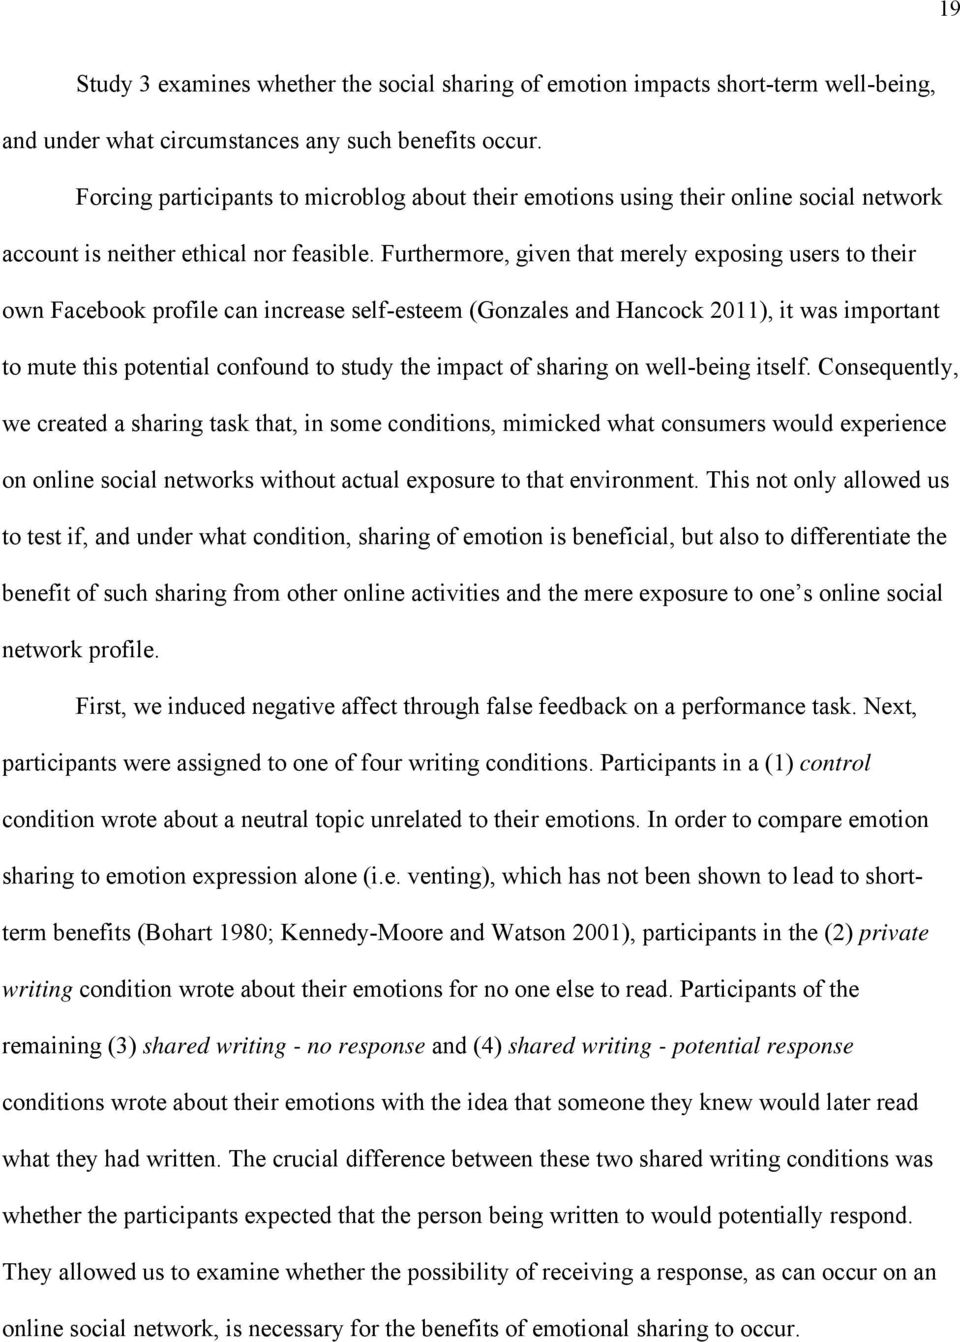 Furthermore, given that merely exposing users to their own Facebook profile can increase self-esteem (Gonzales and Hancock 2011), it was important to mute this potential confound to study the impact